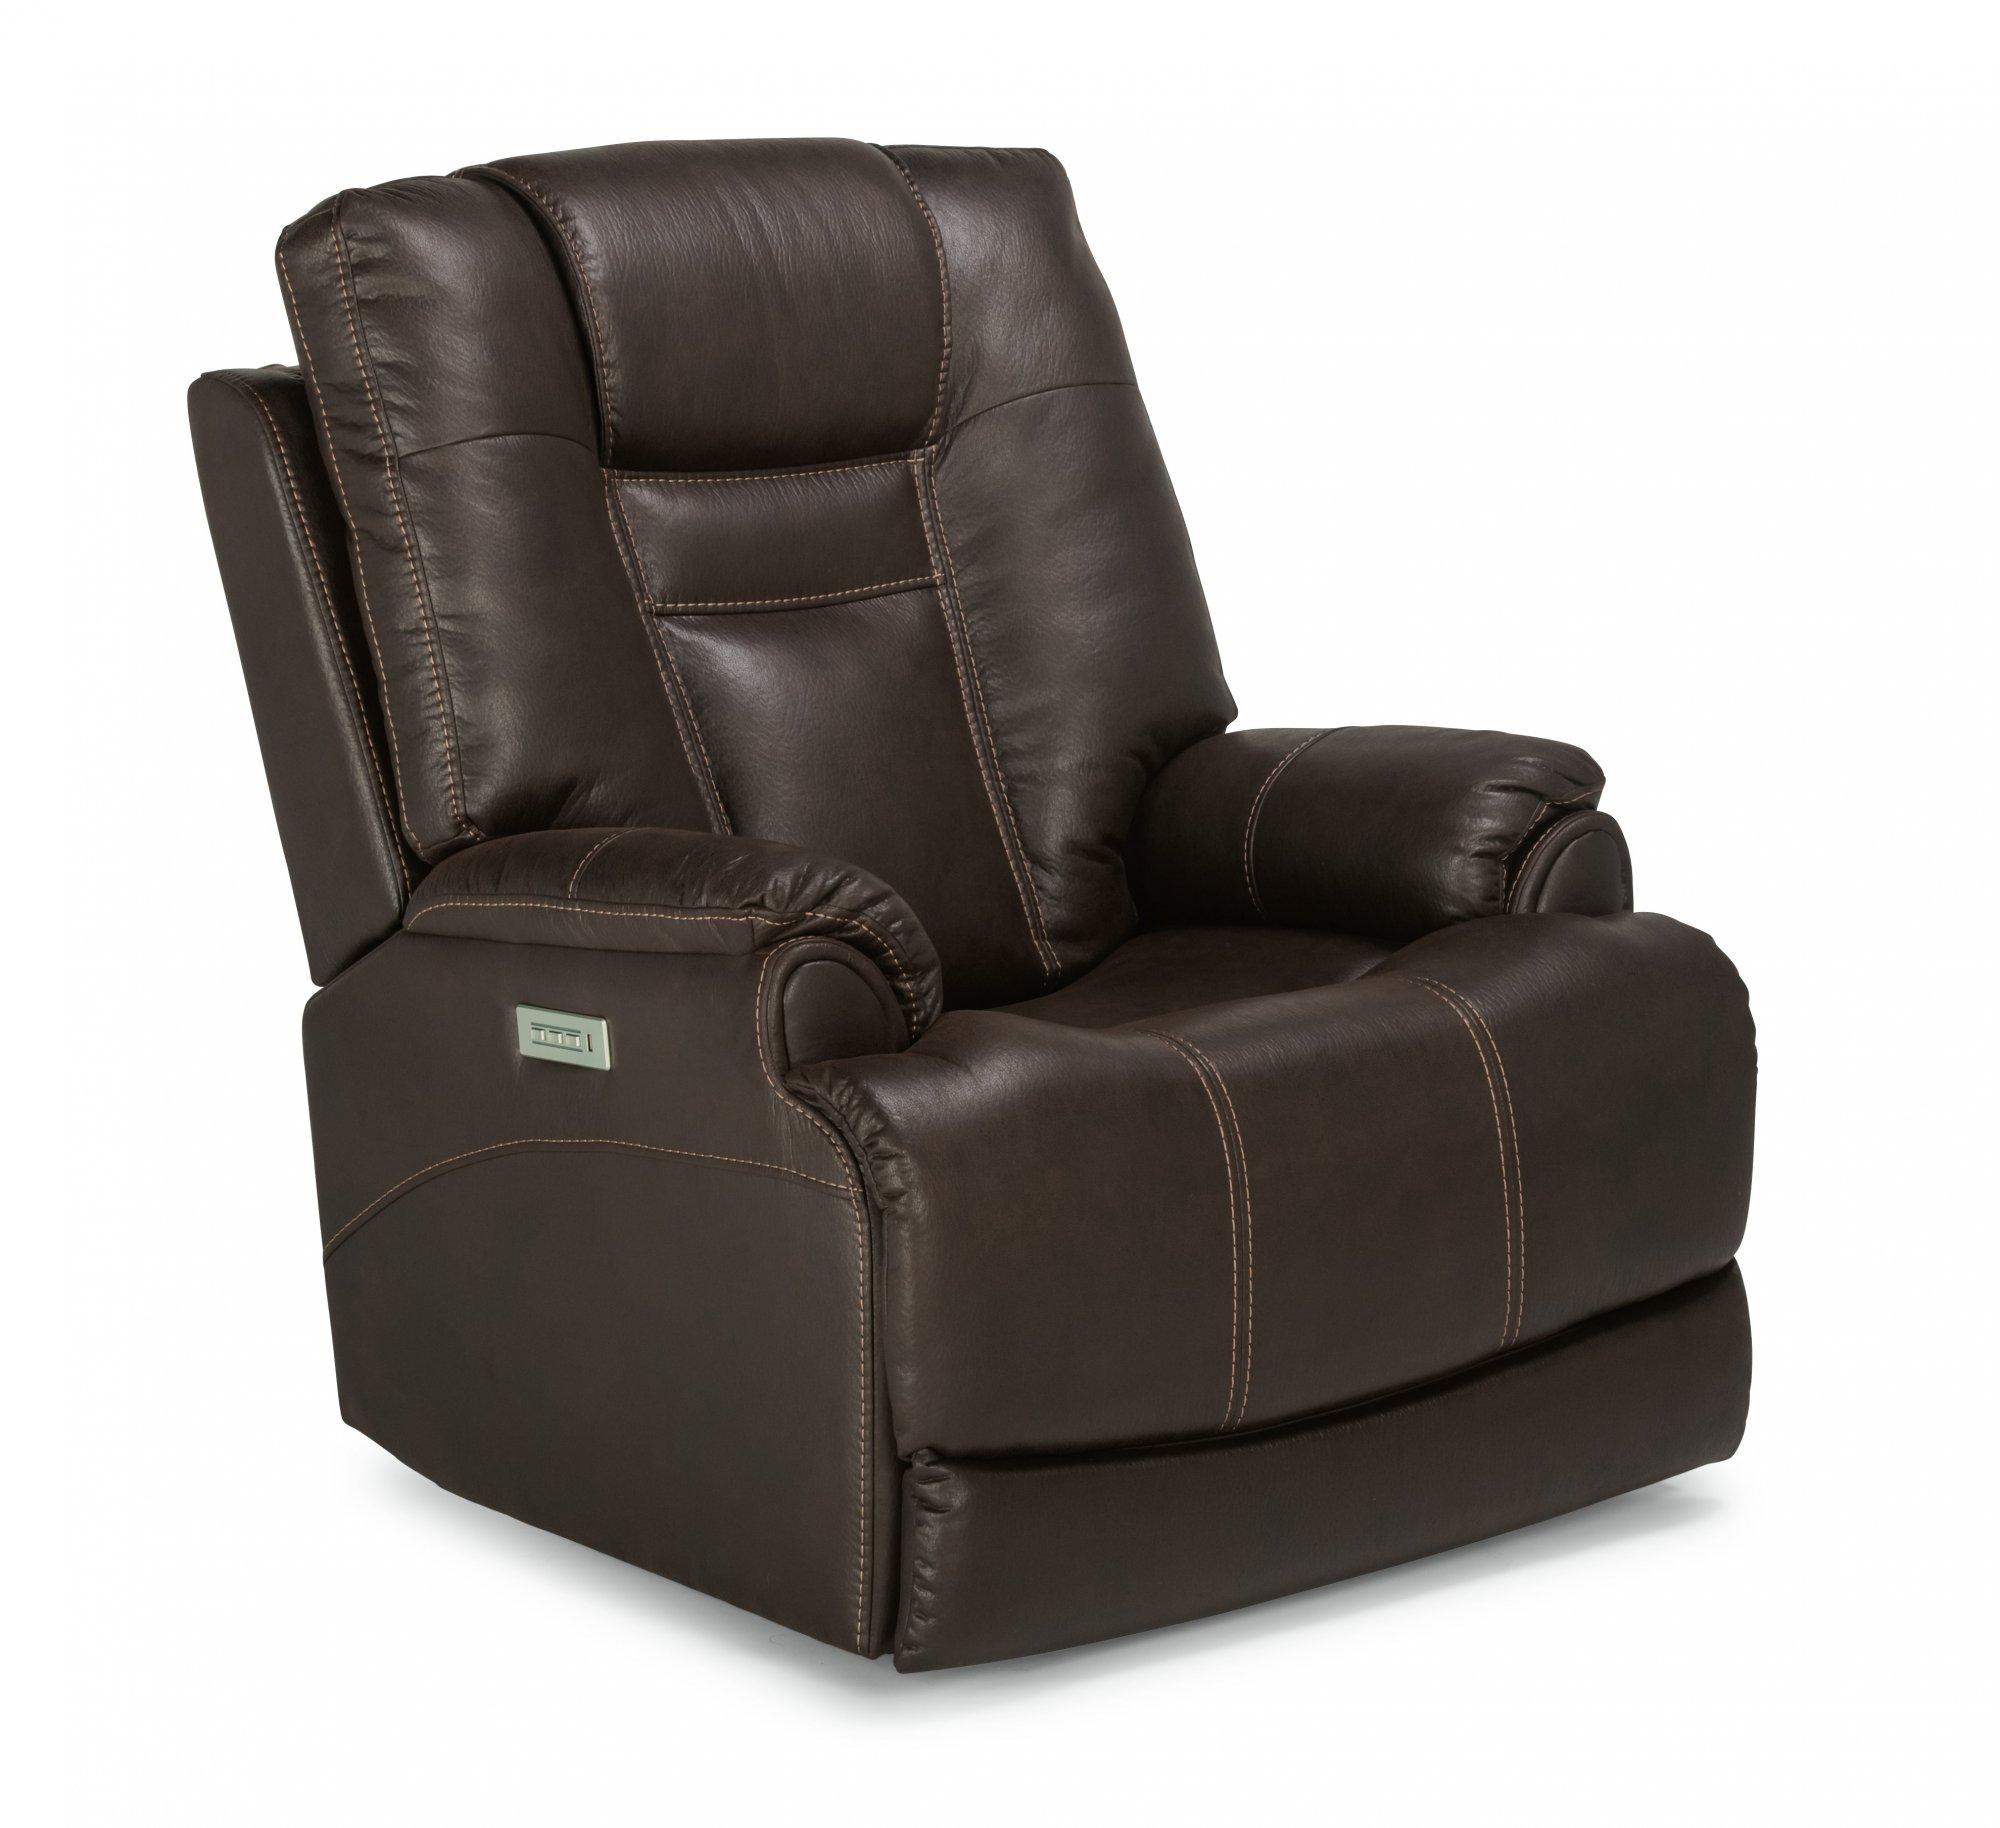 FlexsteelMarley Power Recliner With Power Headrest & Lumbar